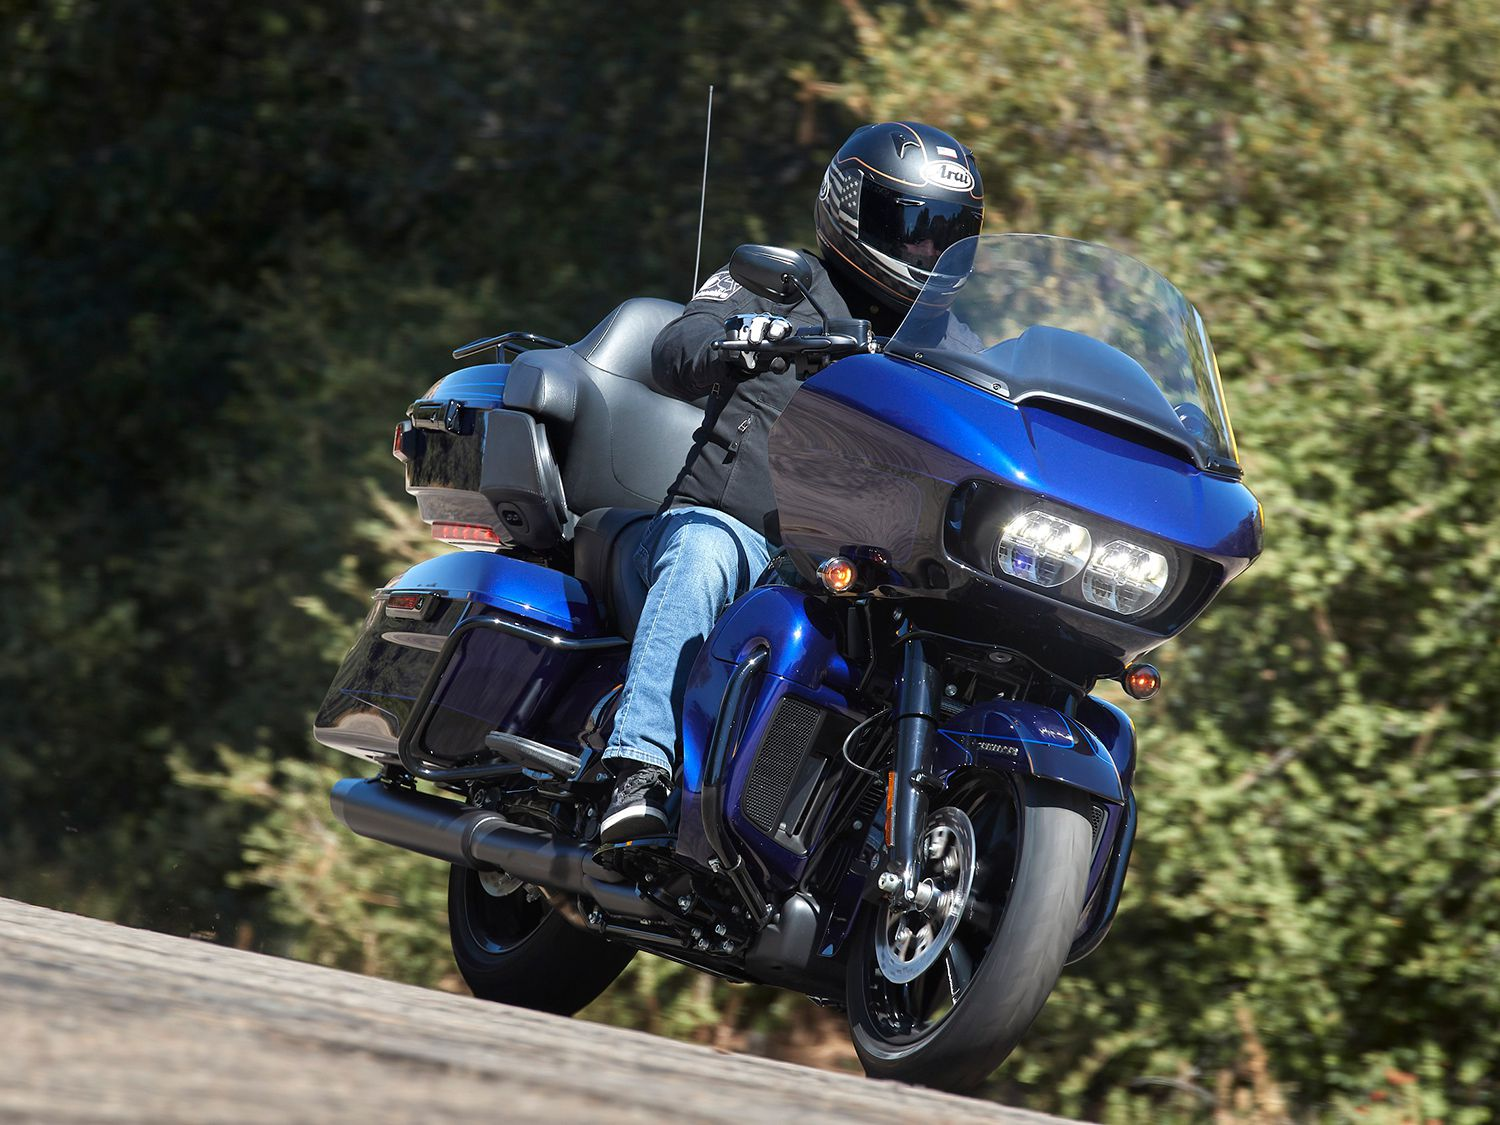 2020 Harley Road Glide Limited First Ride Cycle World